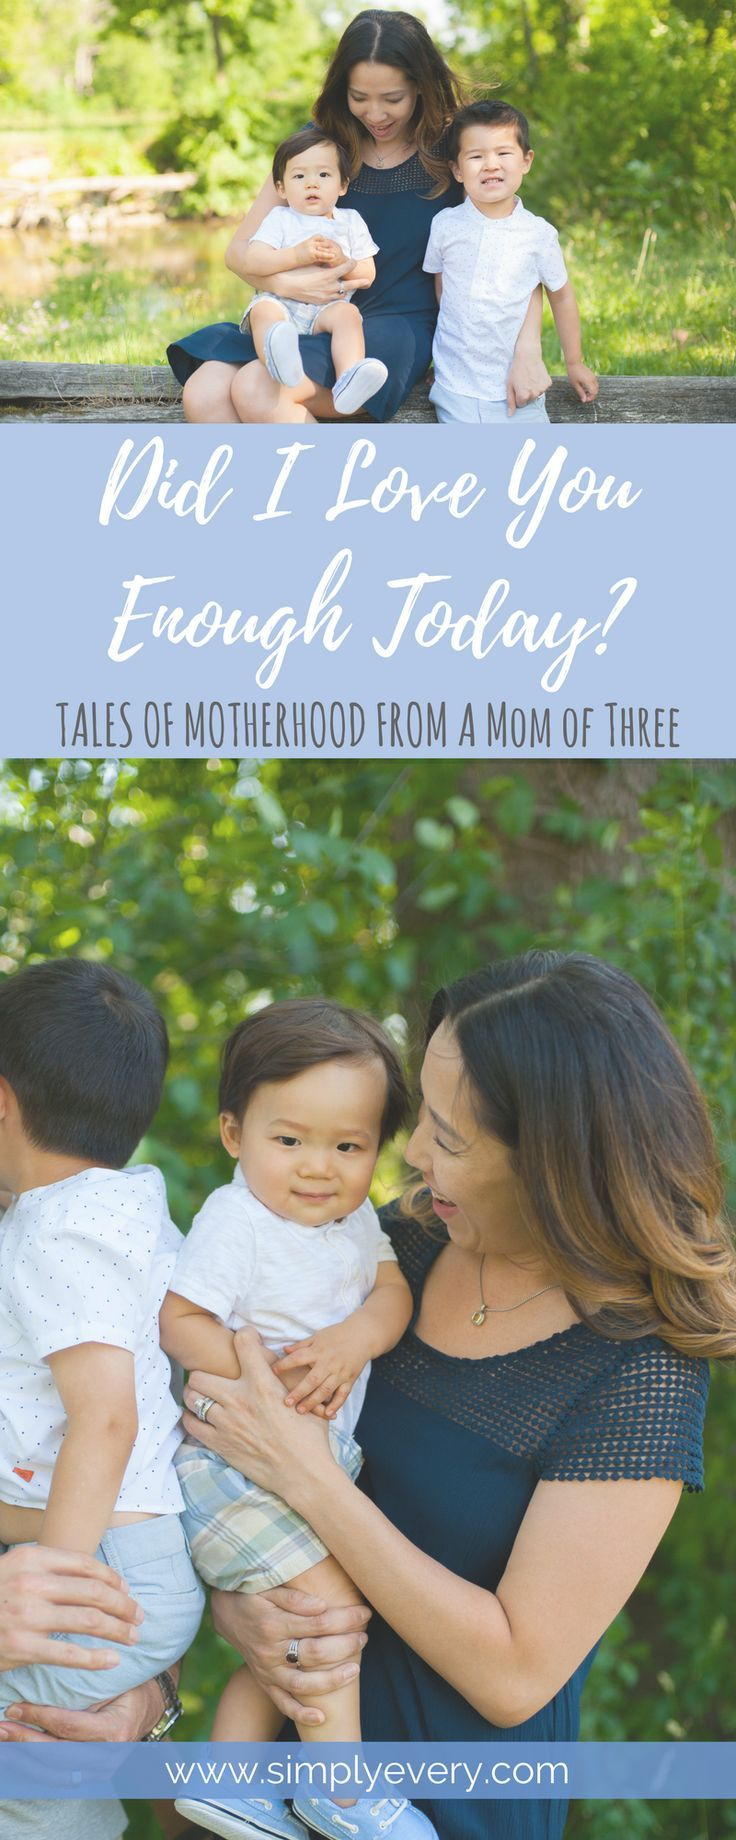 Did I Love You Enough Today, tales of motherhood from a mom of three, parenting, motherhood, mom life, mom guilt, motherhood encouragement, encouragement for moms